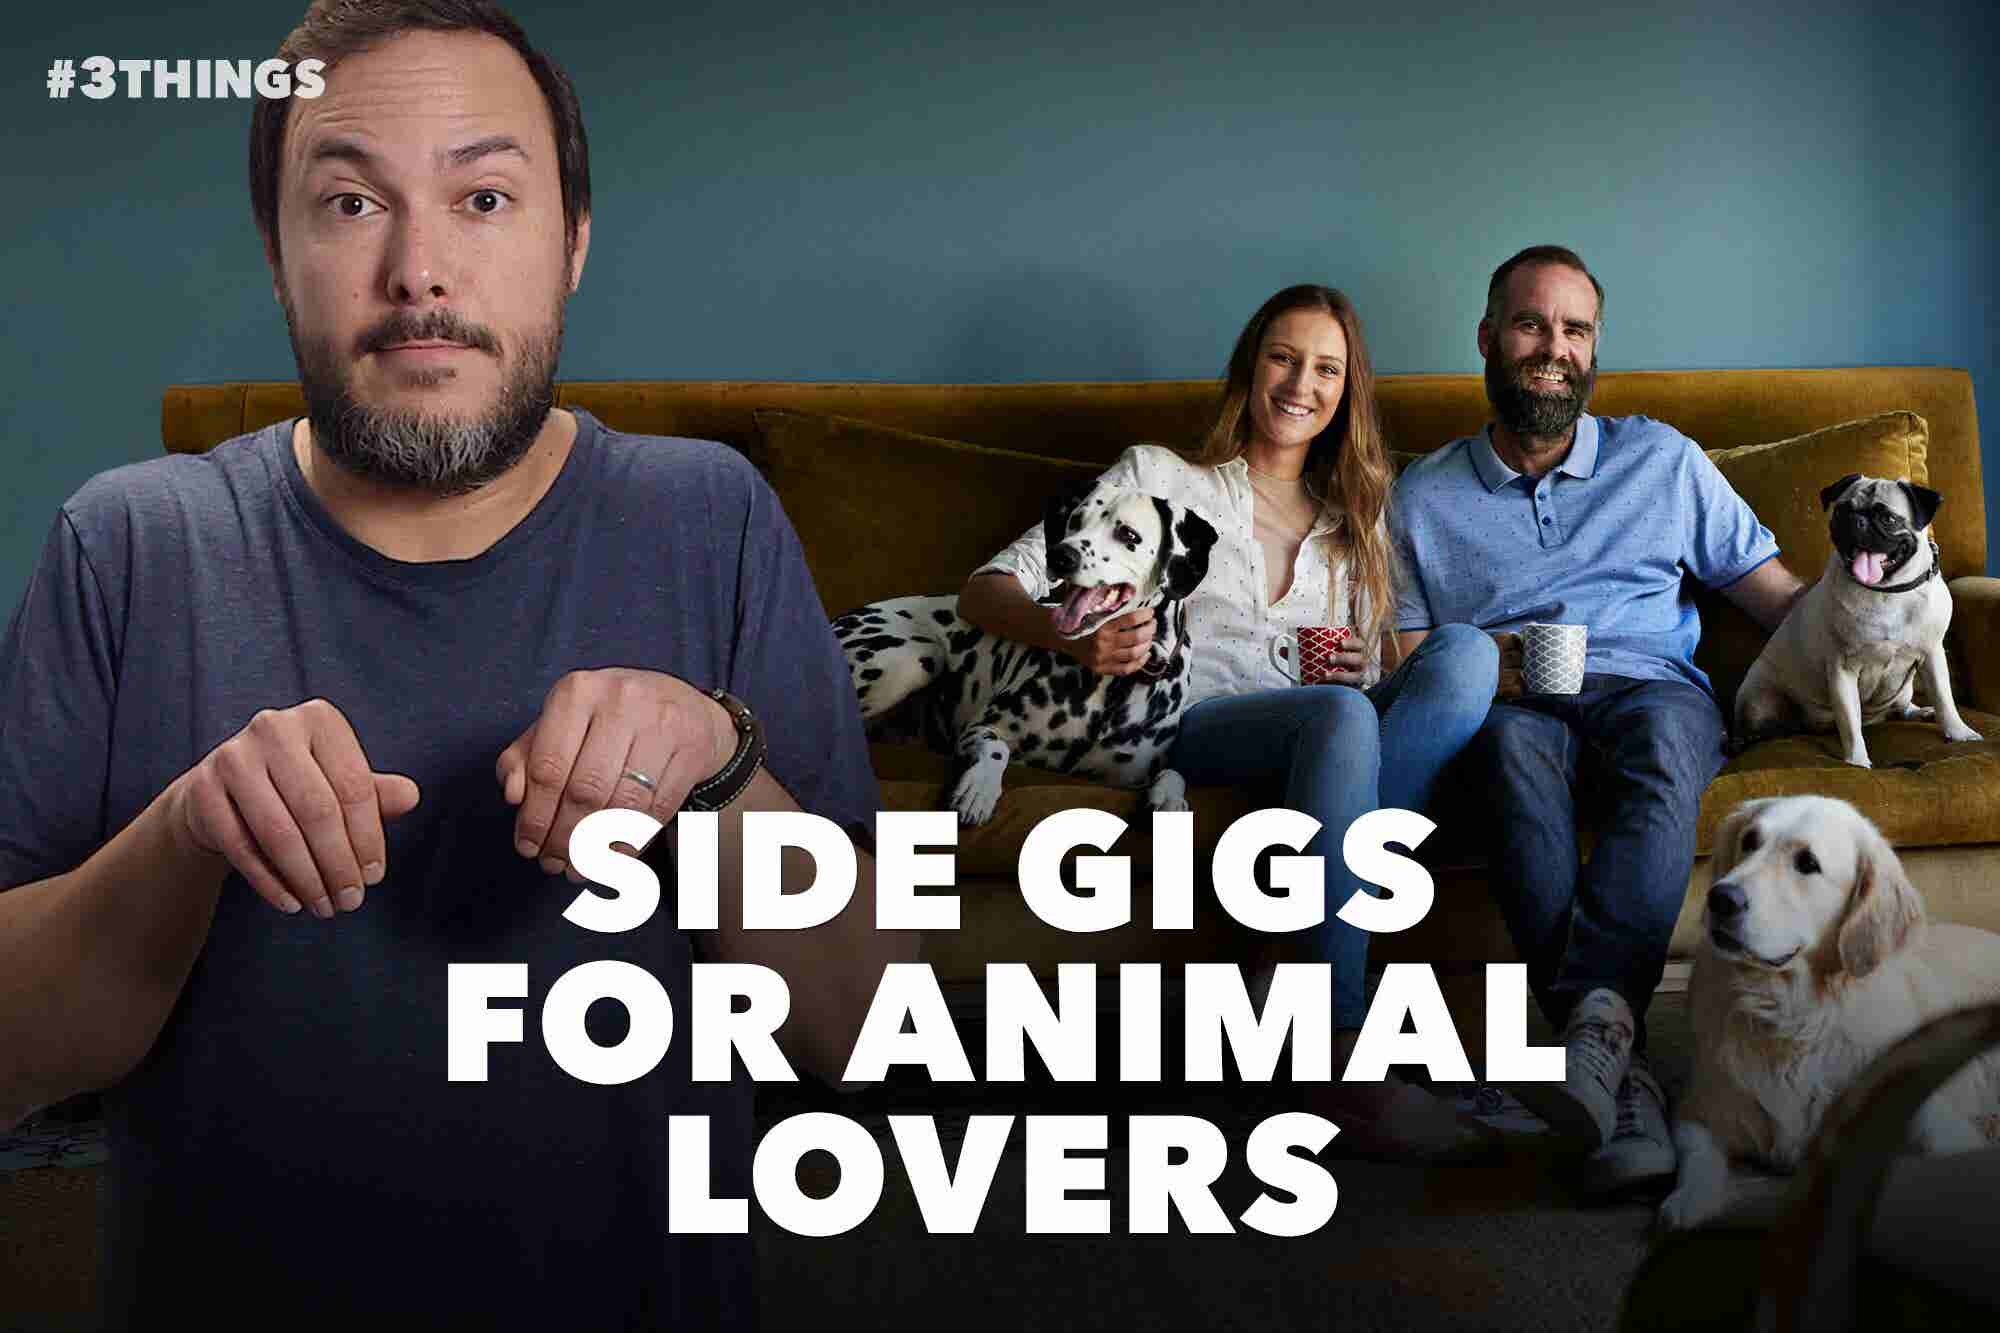 5 Jobs for Animal Lovers Looking to Make Extra Money (60-Second Video)